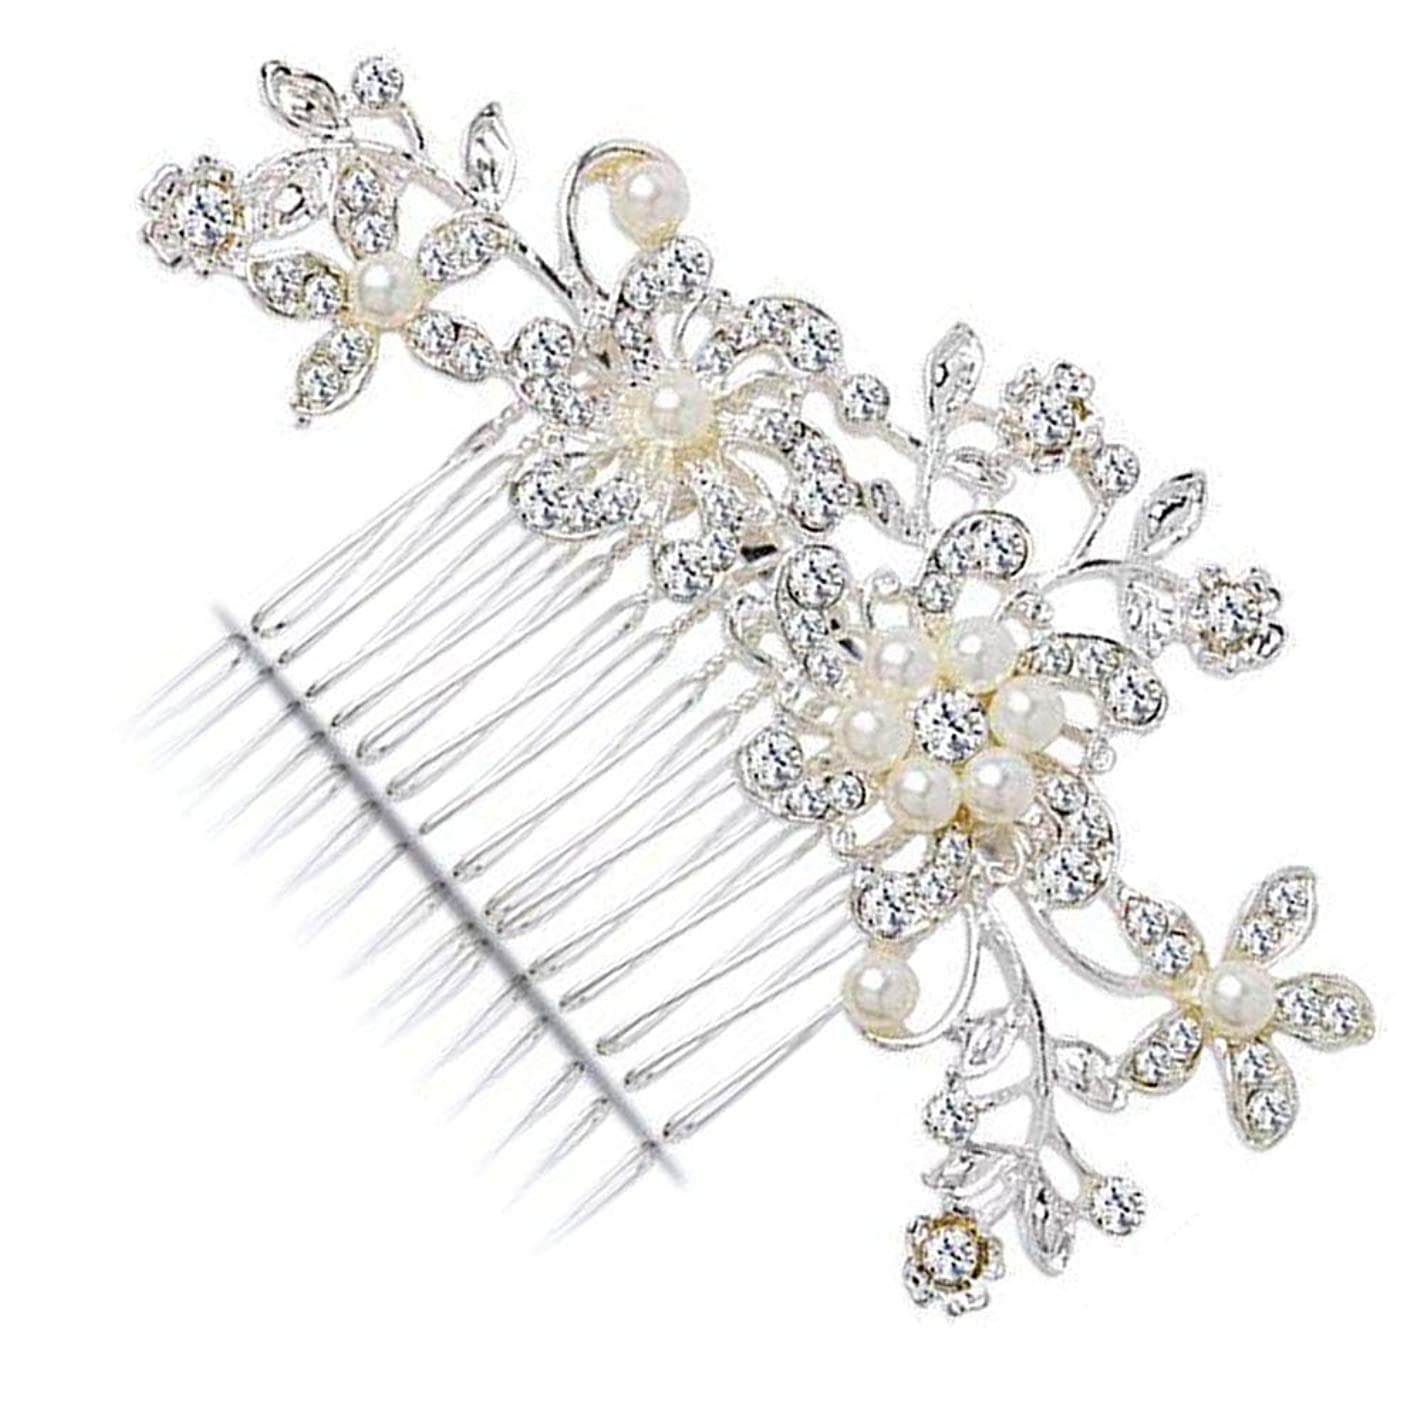 KaLaiXing Hair Comb-Vintage Simulated Crystal and Pearl Side Combs Bridal Headpiece Wedding Accessories for Wedding